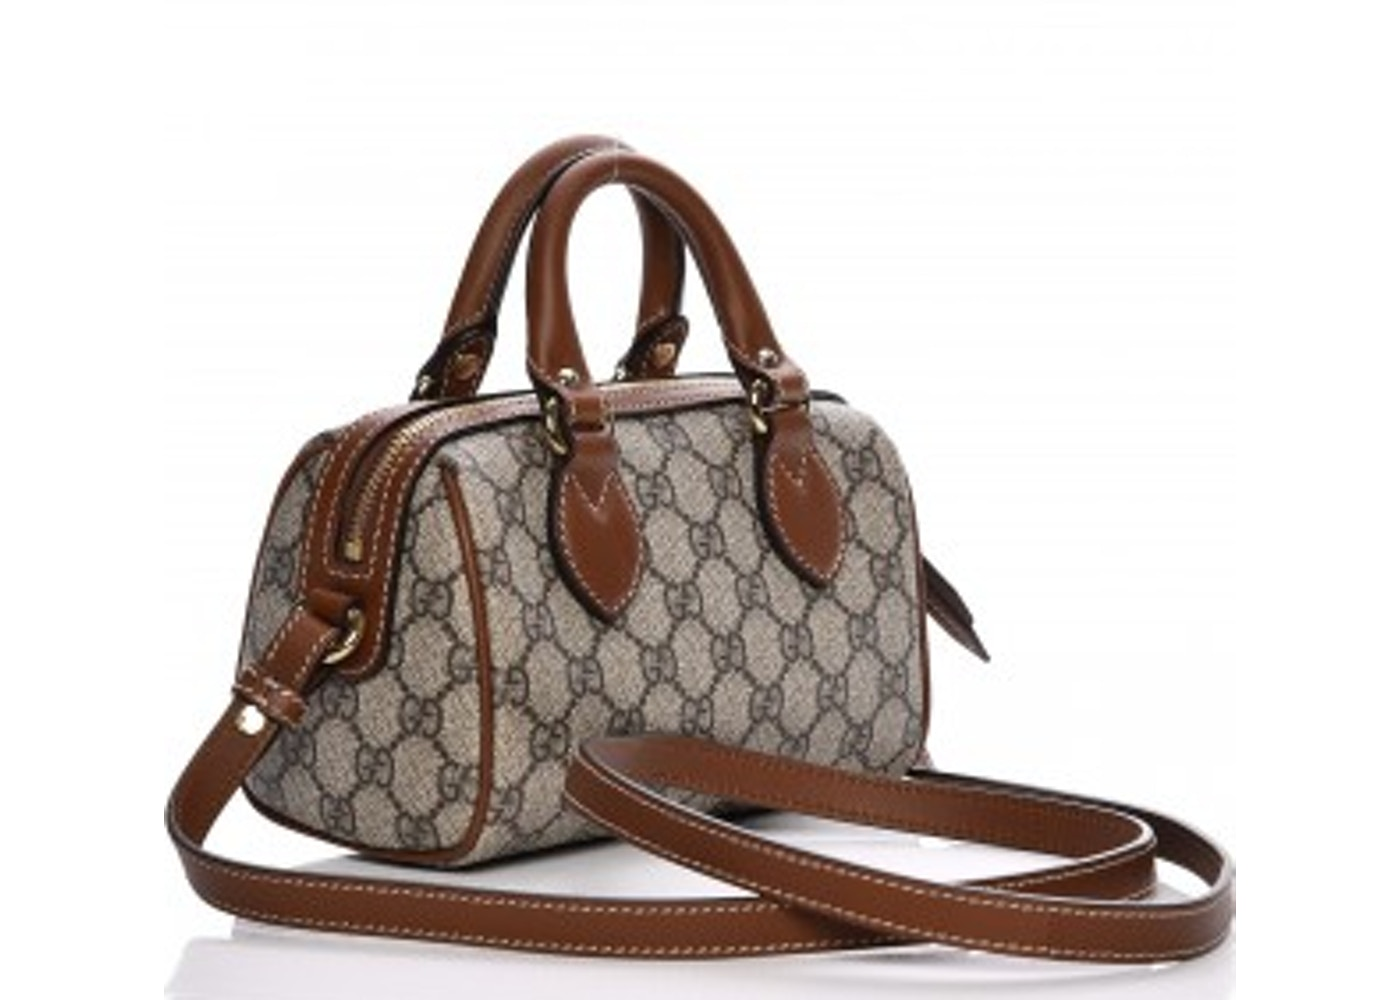 827c2d2e391b13 Gucci Boston Bag Top Handle GG Supreme Monogram Mini Brown/Cognac